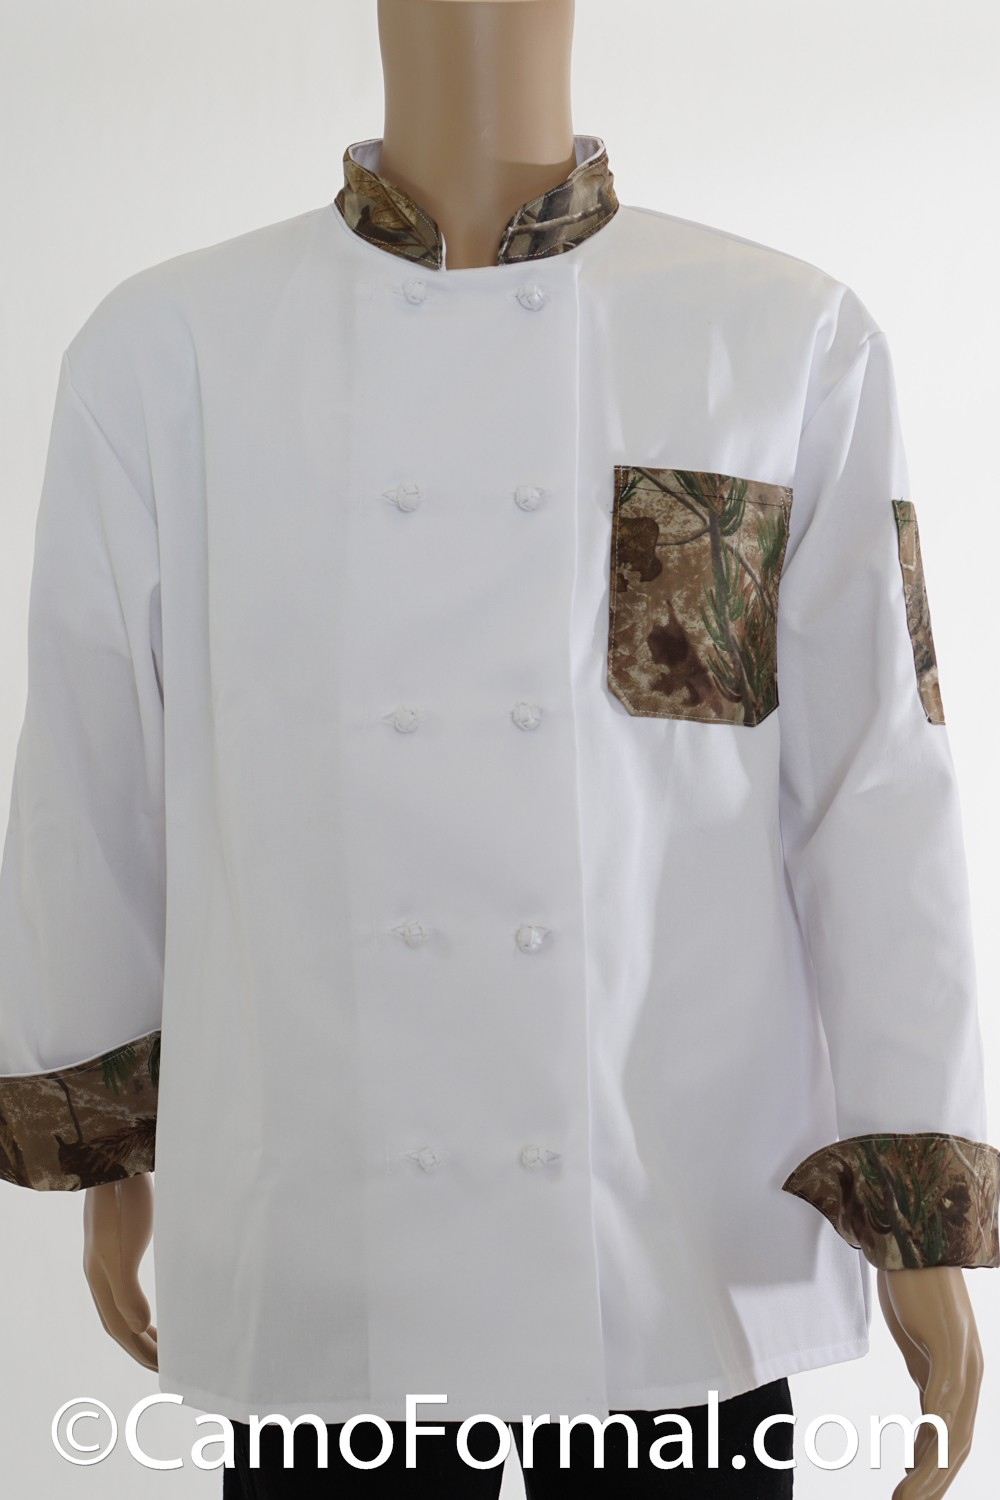 Chef Jacket Camo Trimmed Camouflage Prom Wedding